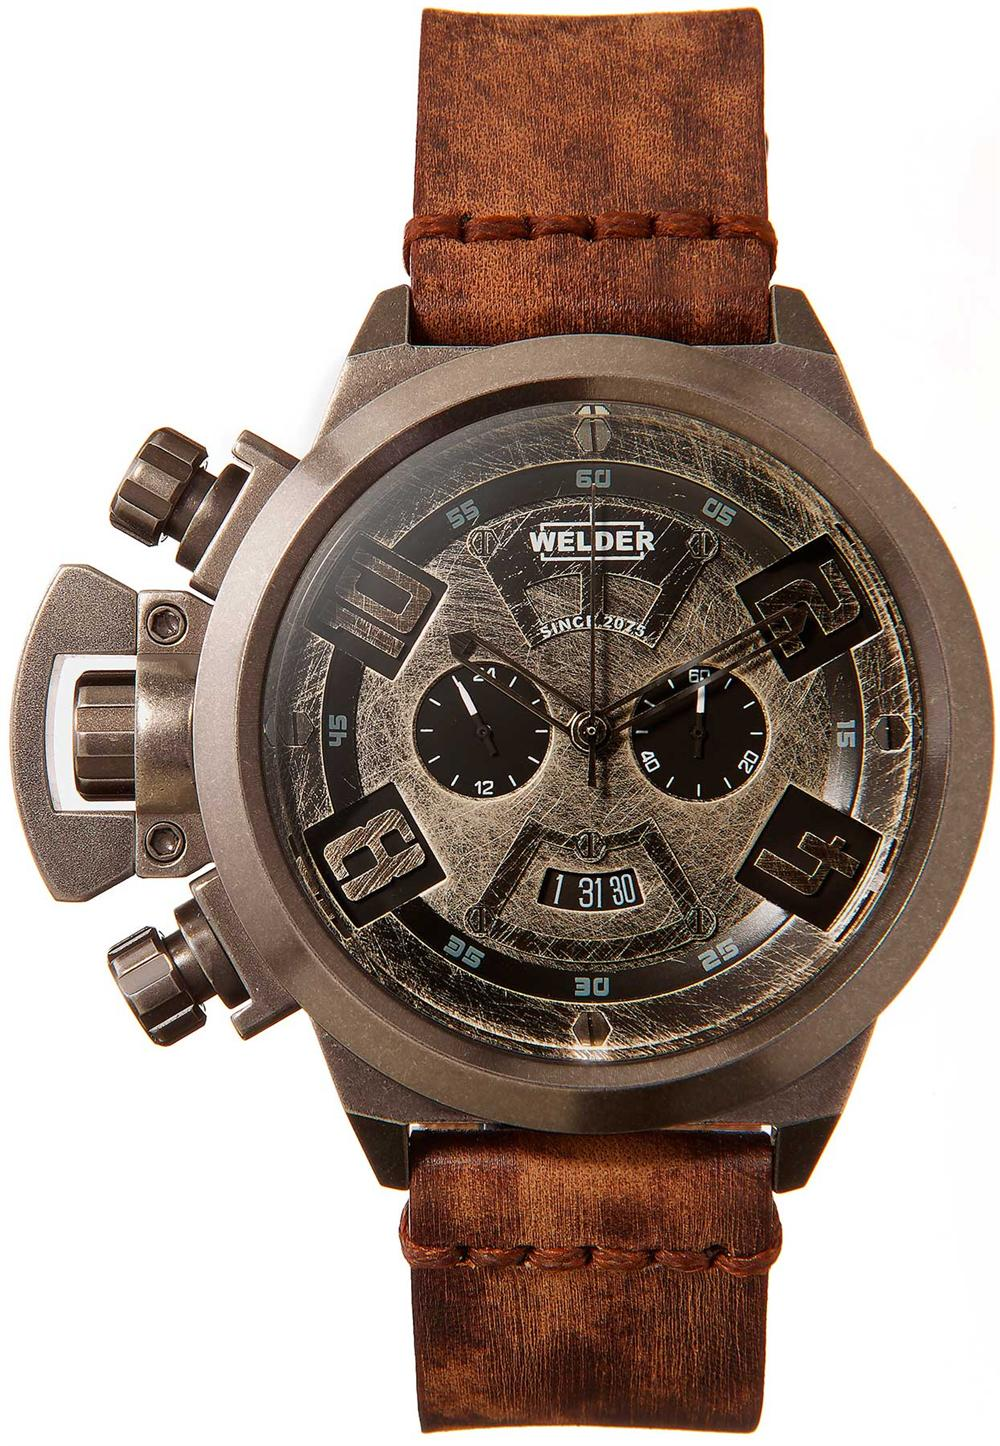 Welder K24 3600 Men's Watches | Vintage Distressed Collection